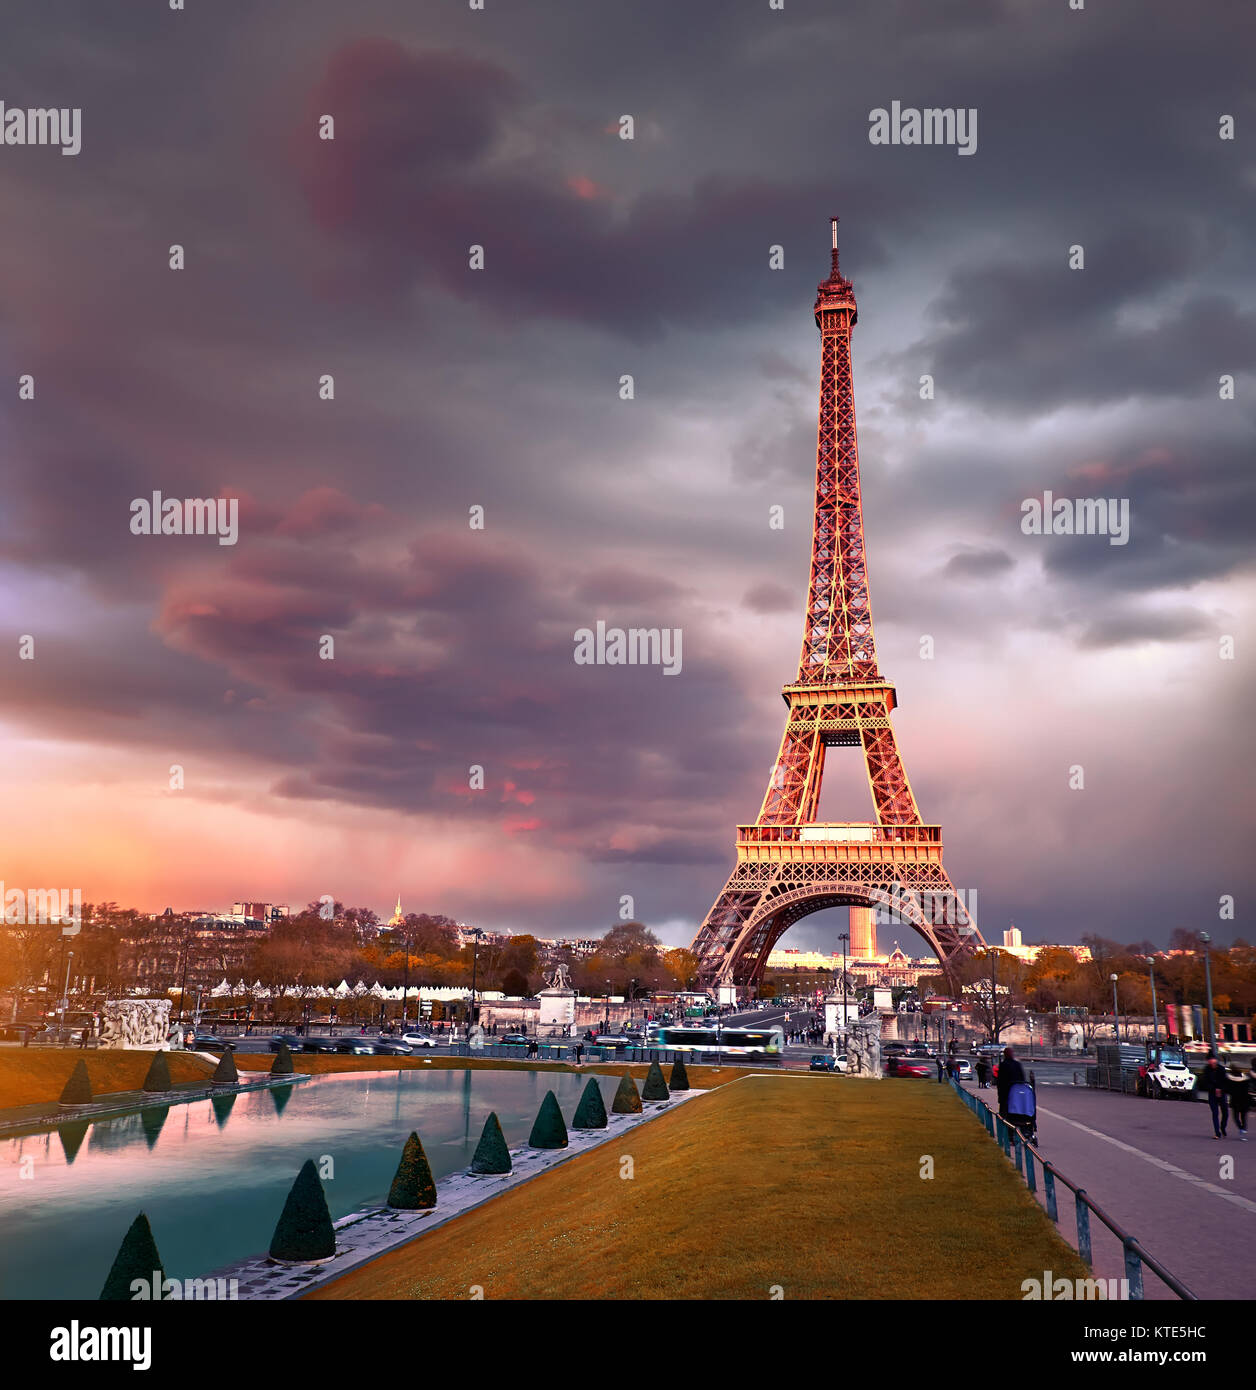 Eiffel tower on a sunset half-lit with last rays of the setting Sun. Panoramic toned image. Stock Photo